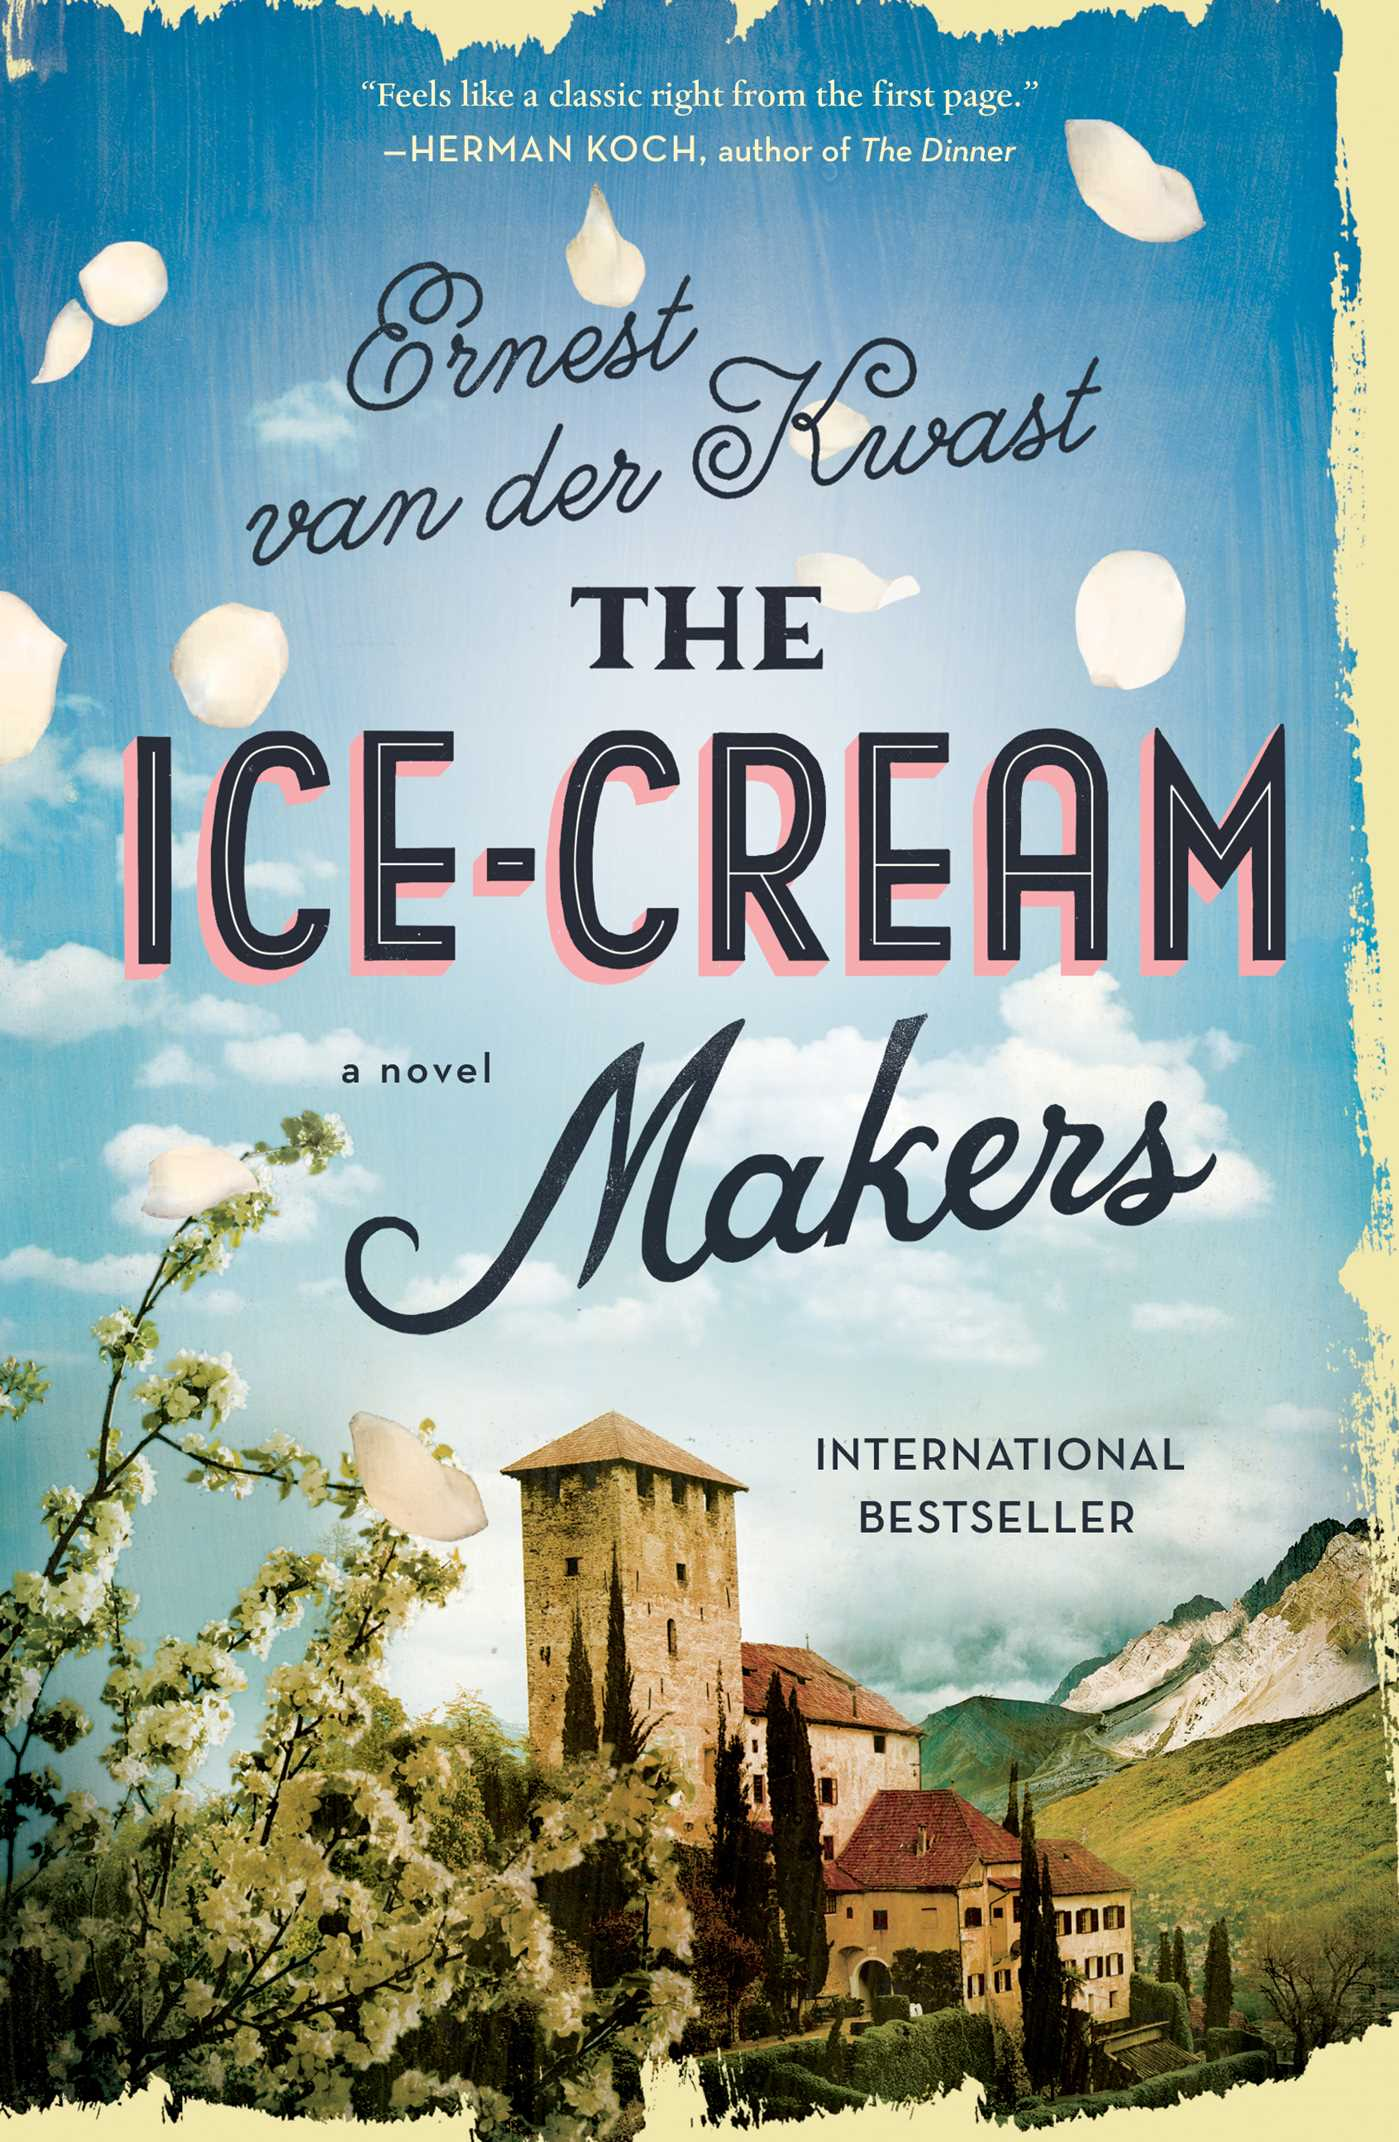 The ice cream makers 9781501159398 hr